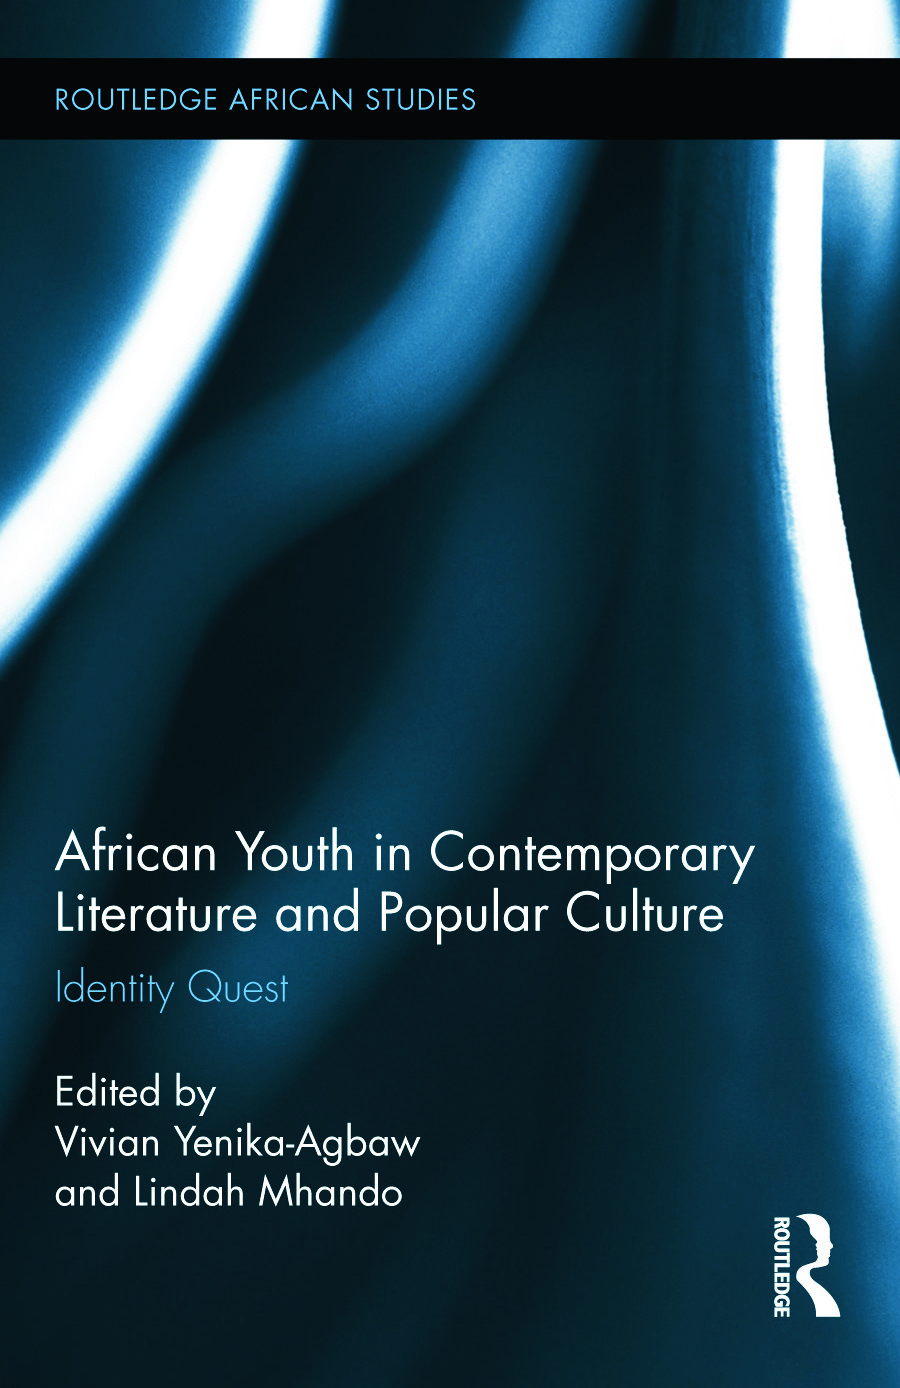 African Youth in Contemporary Literature and Popular Culture